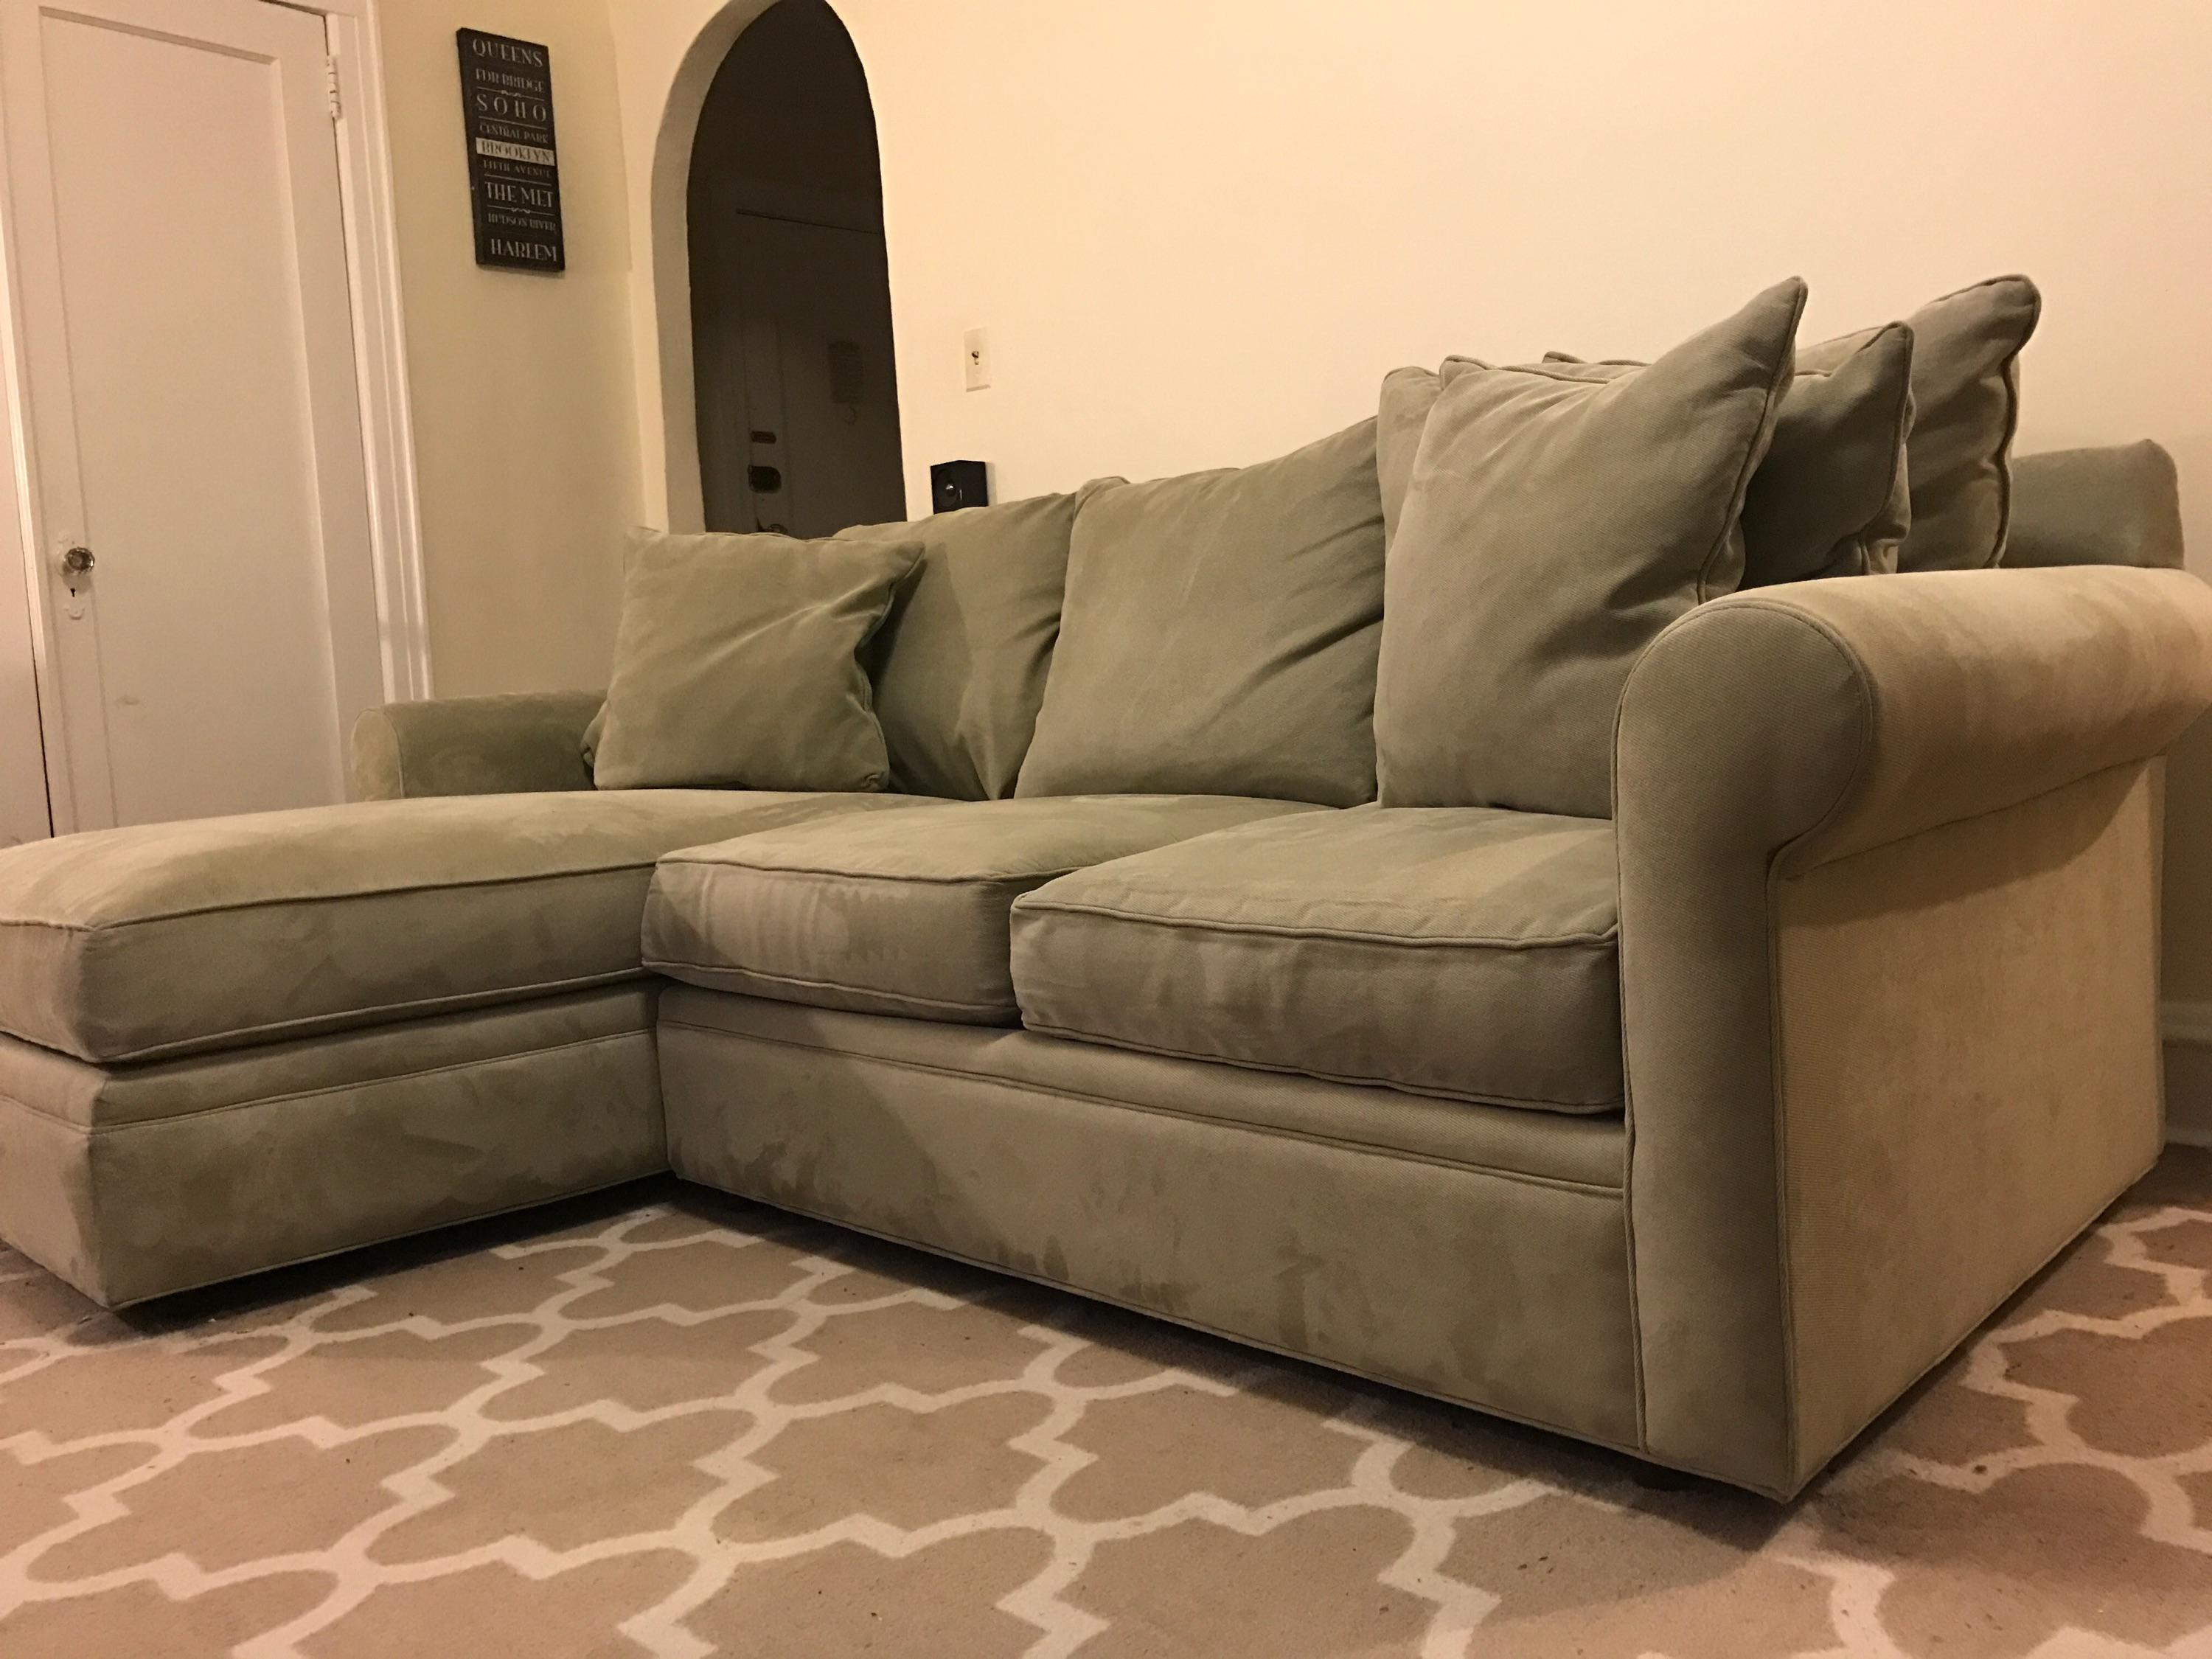 Macyu0027s Doss Microfiber Sectional With Chaise - Image 3 ...  sc 1 st  Chairish : macys chaise - Sectionals, Sofas & Couches